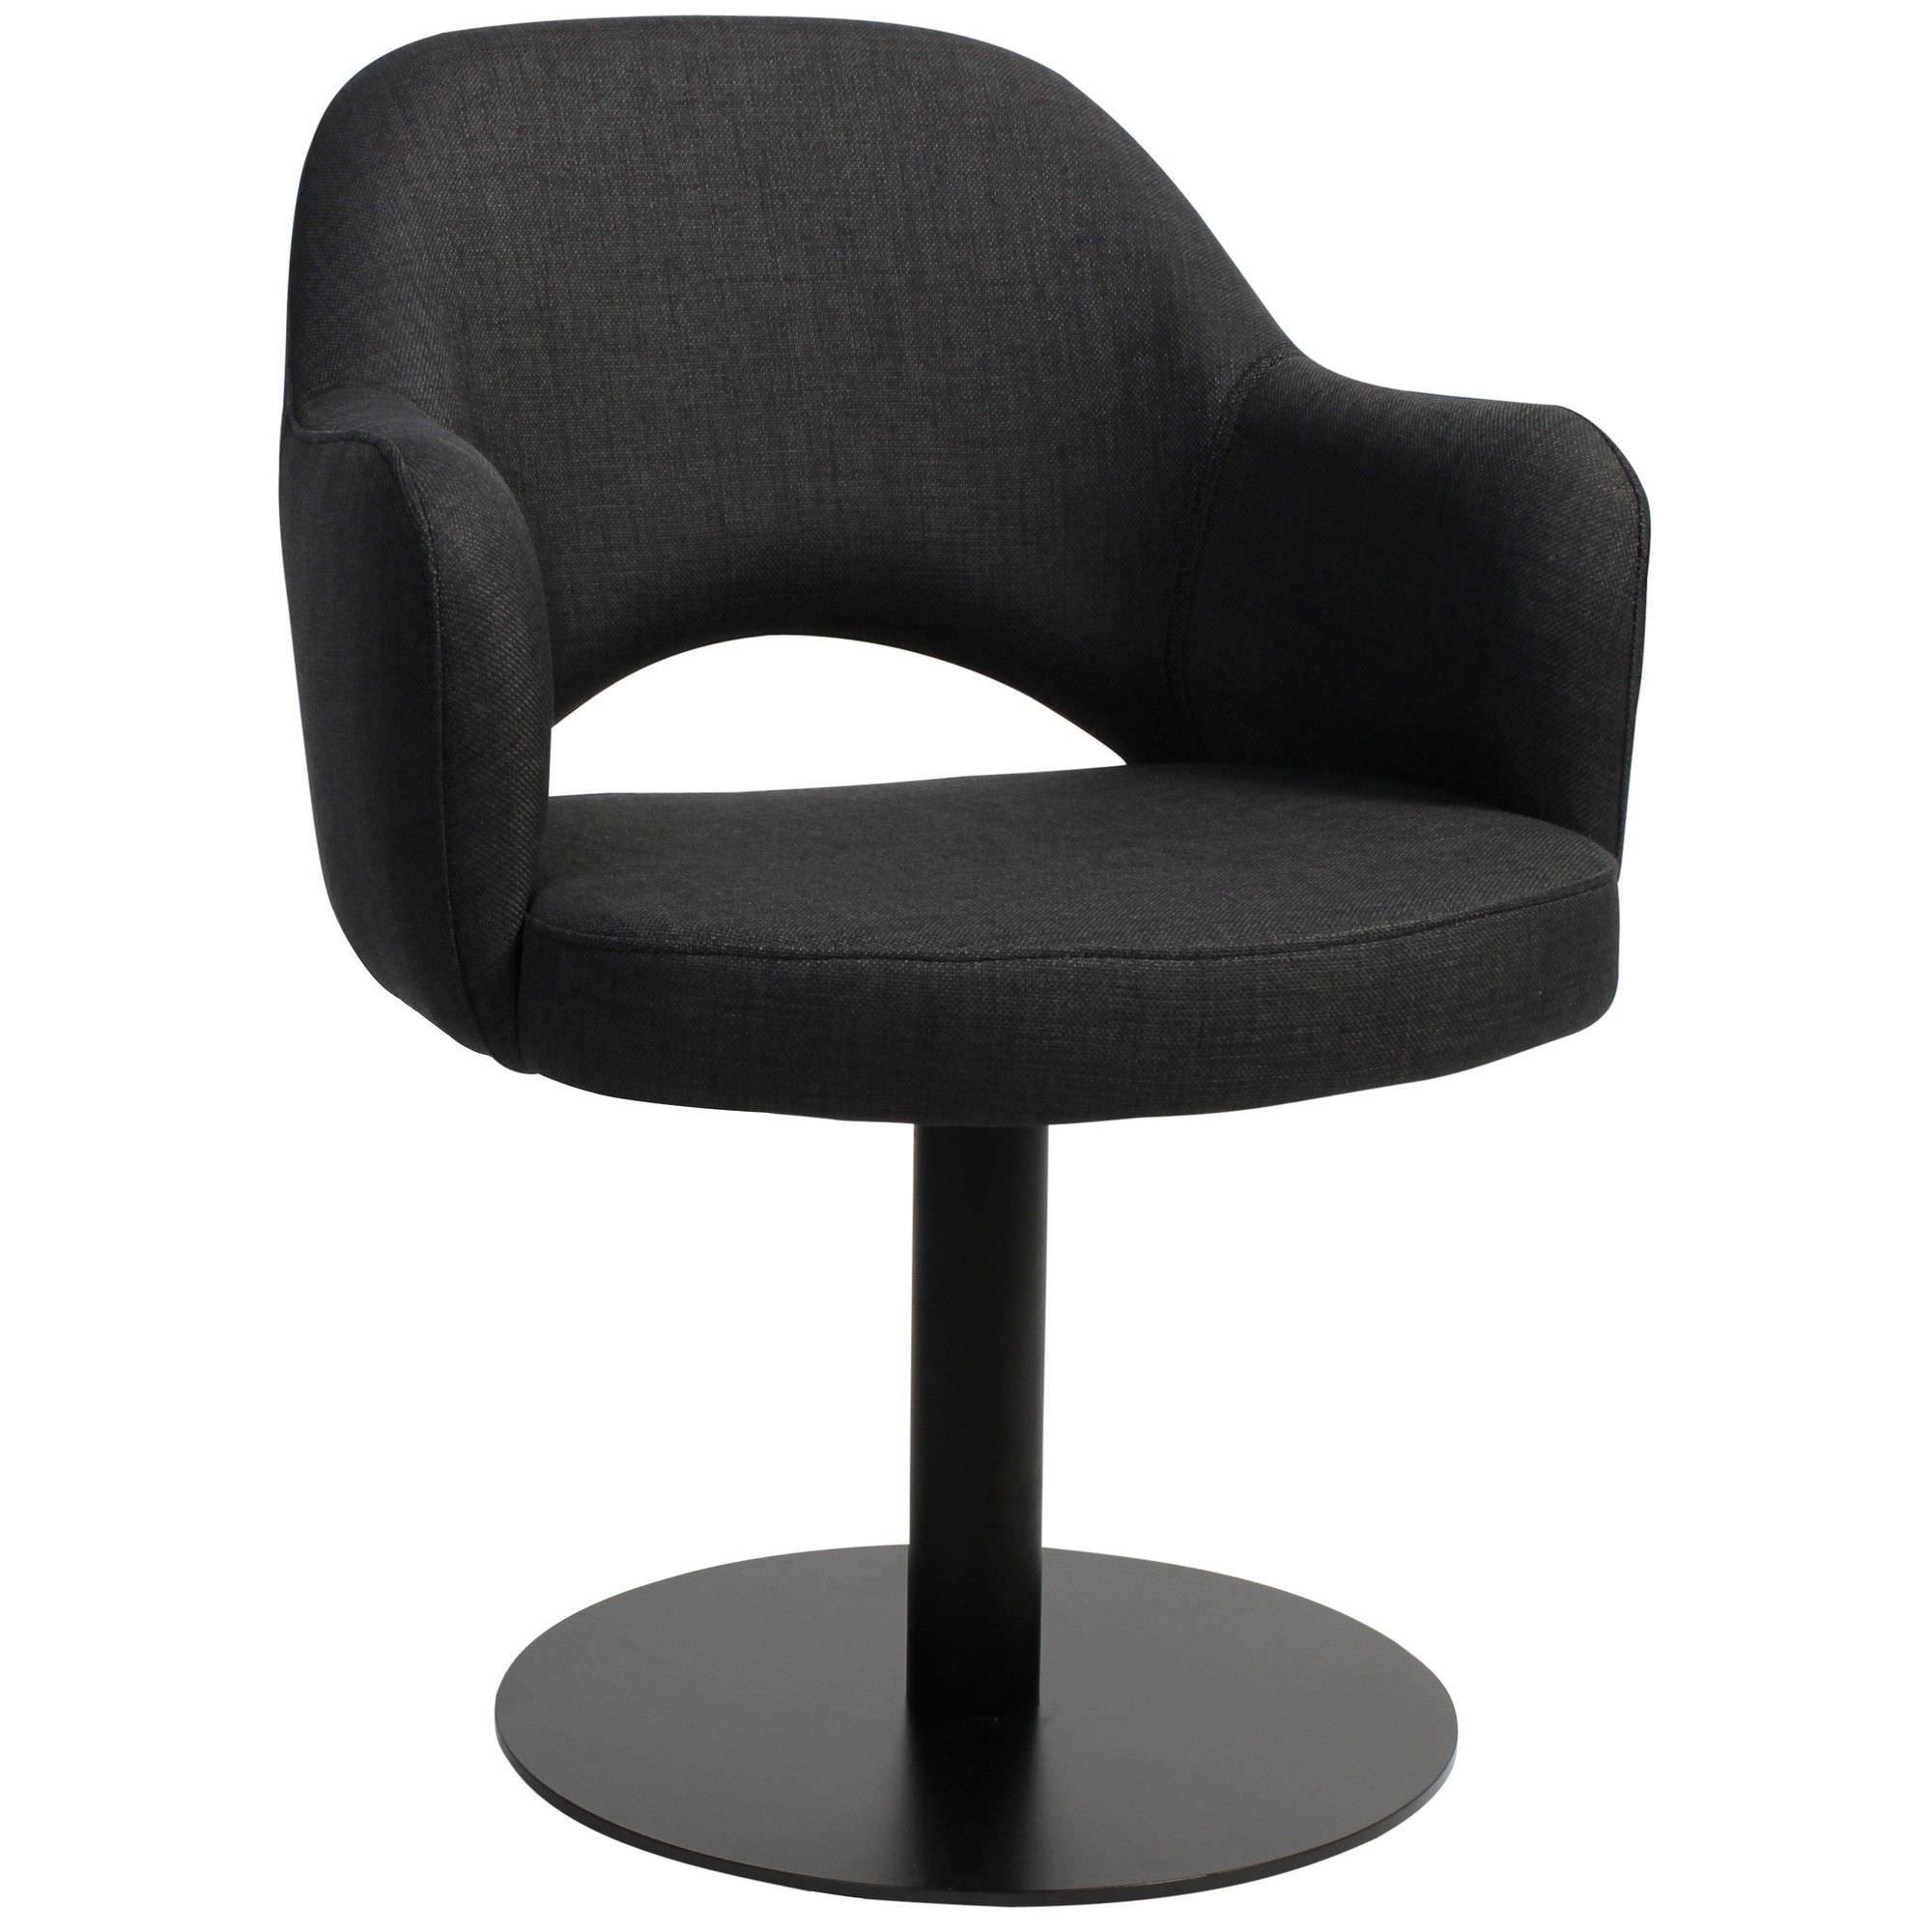 Albury Commercial Grade Fabric Dining Stool with Arm, Metal Disc Base, Charcoal / Black